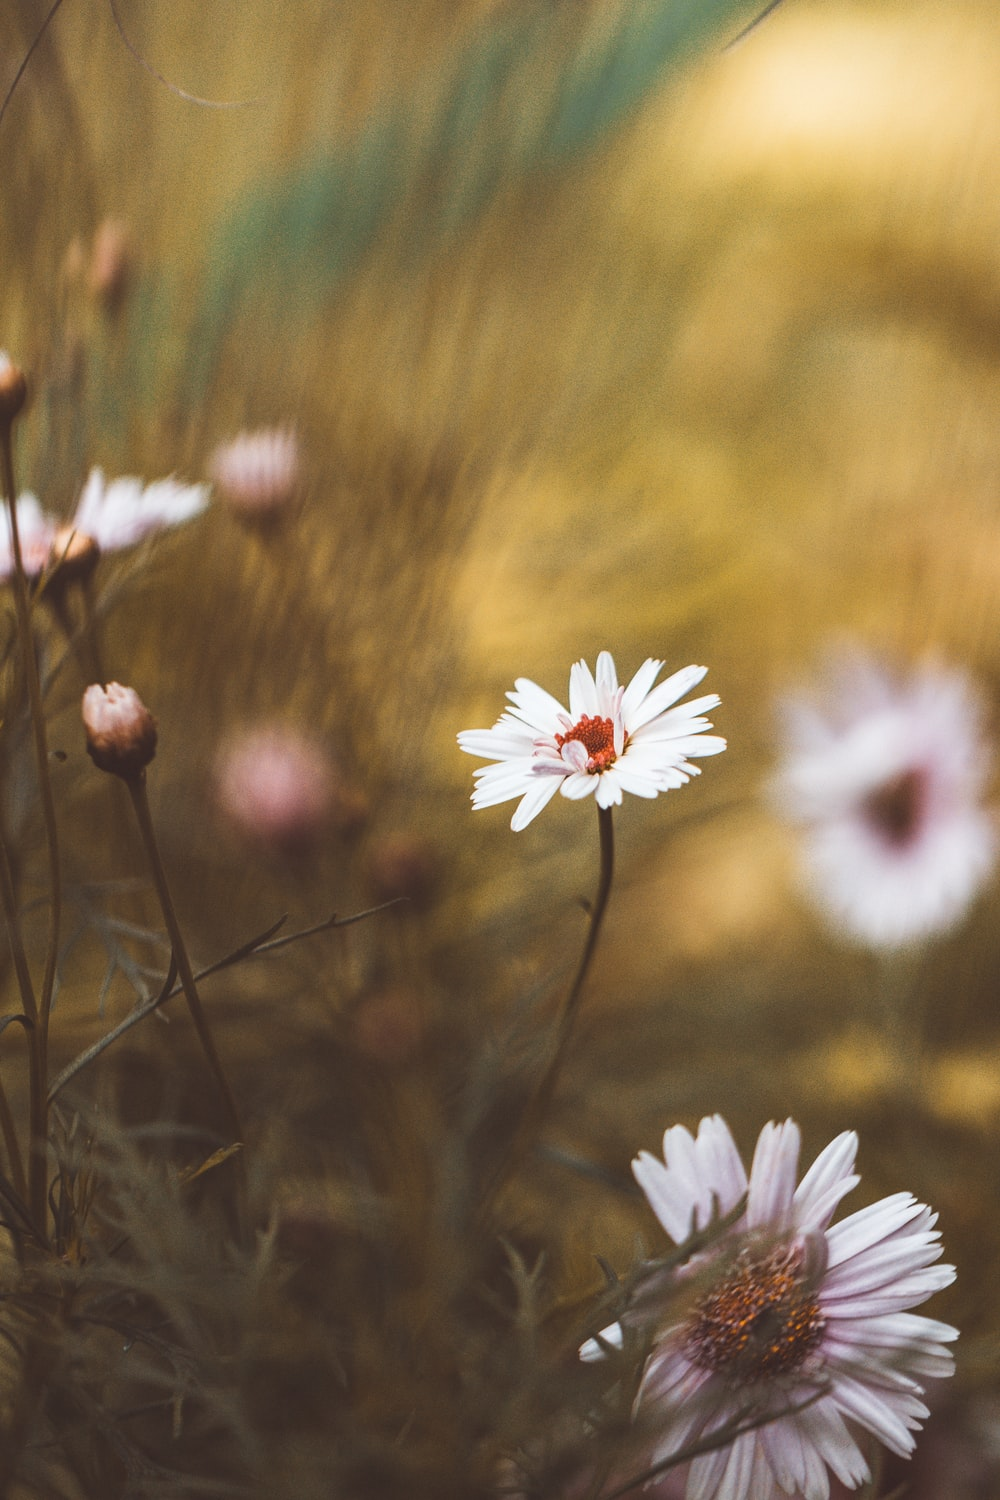 Small White Flower Pictures Download Free Images On Unsplash